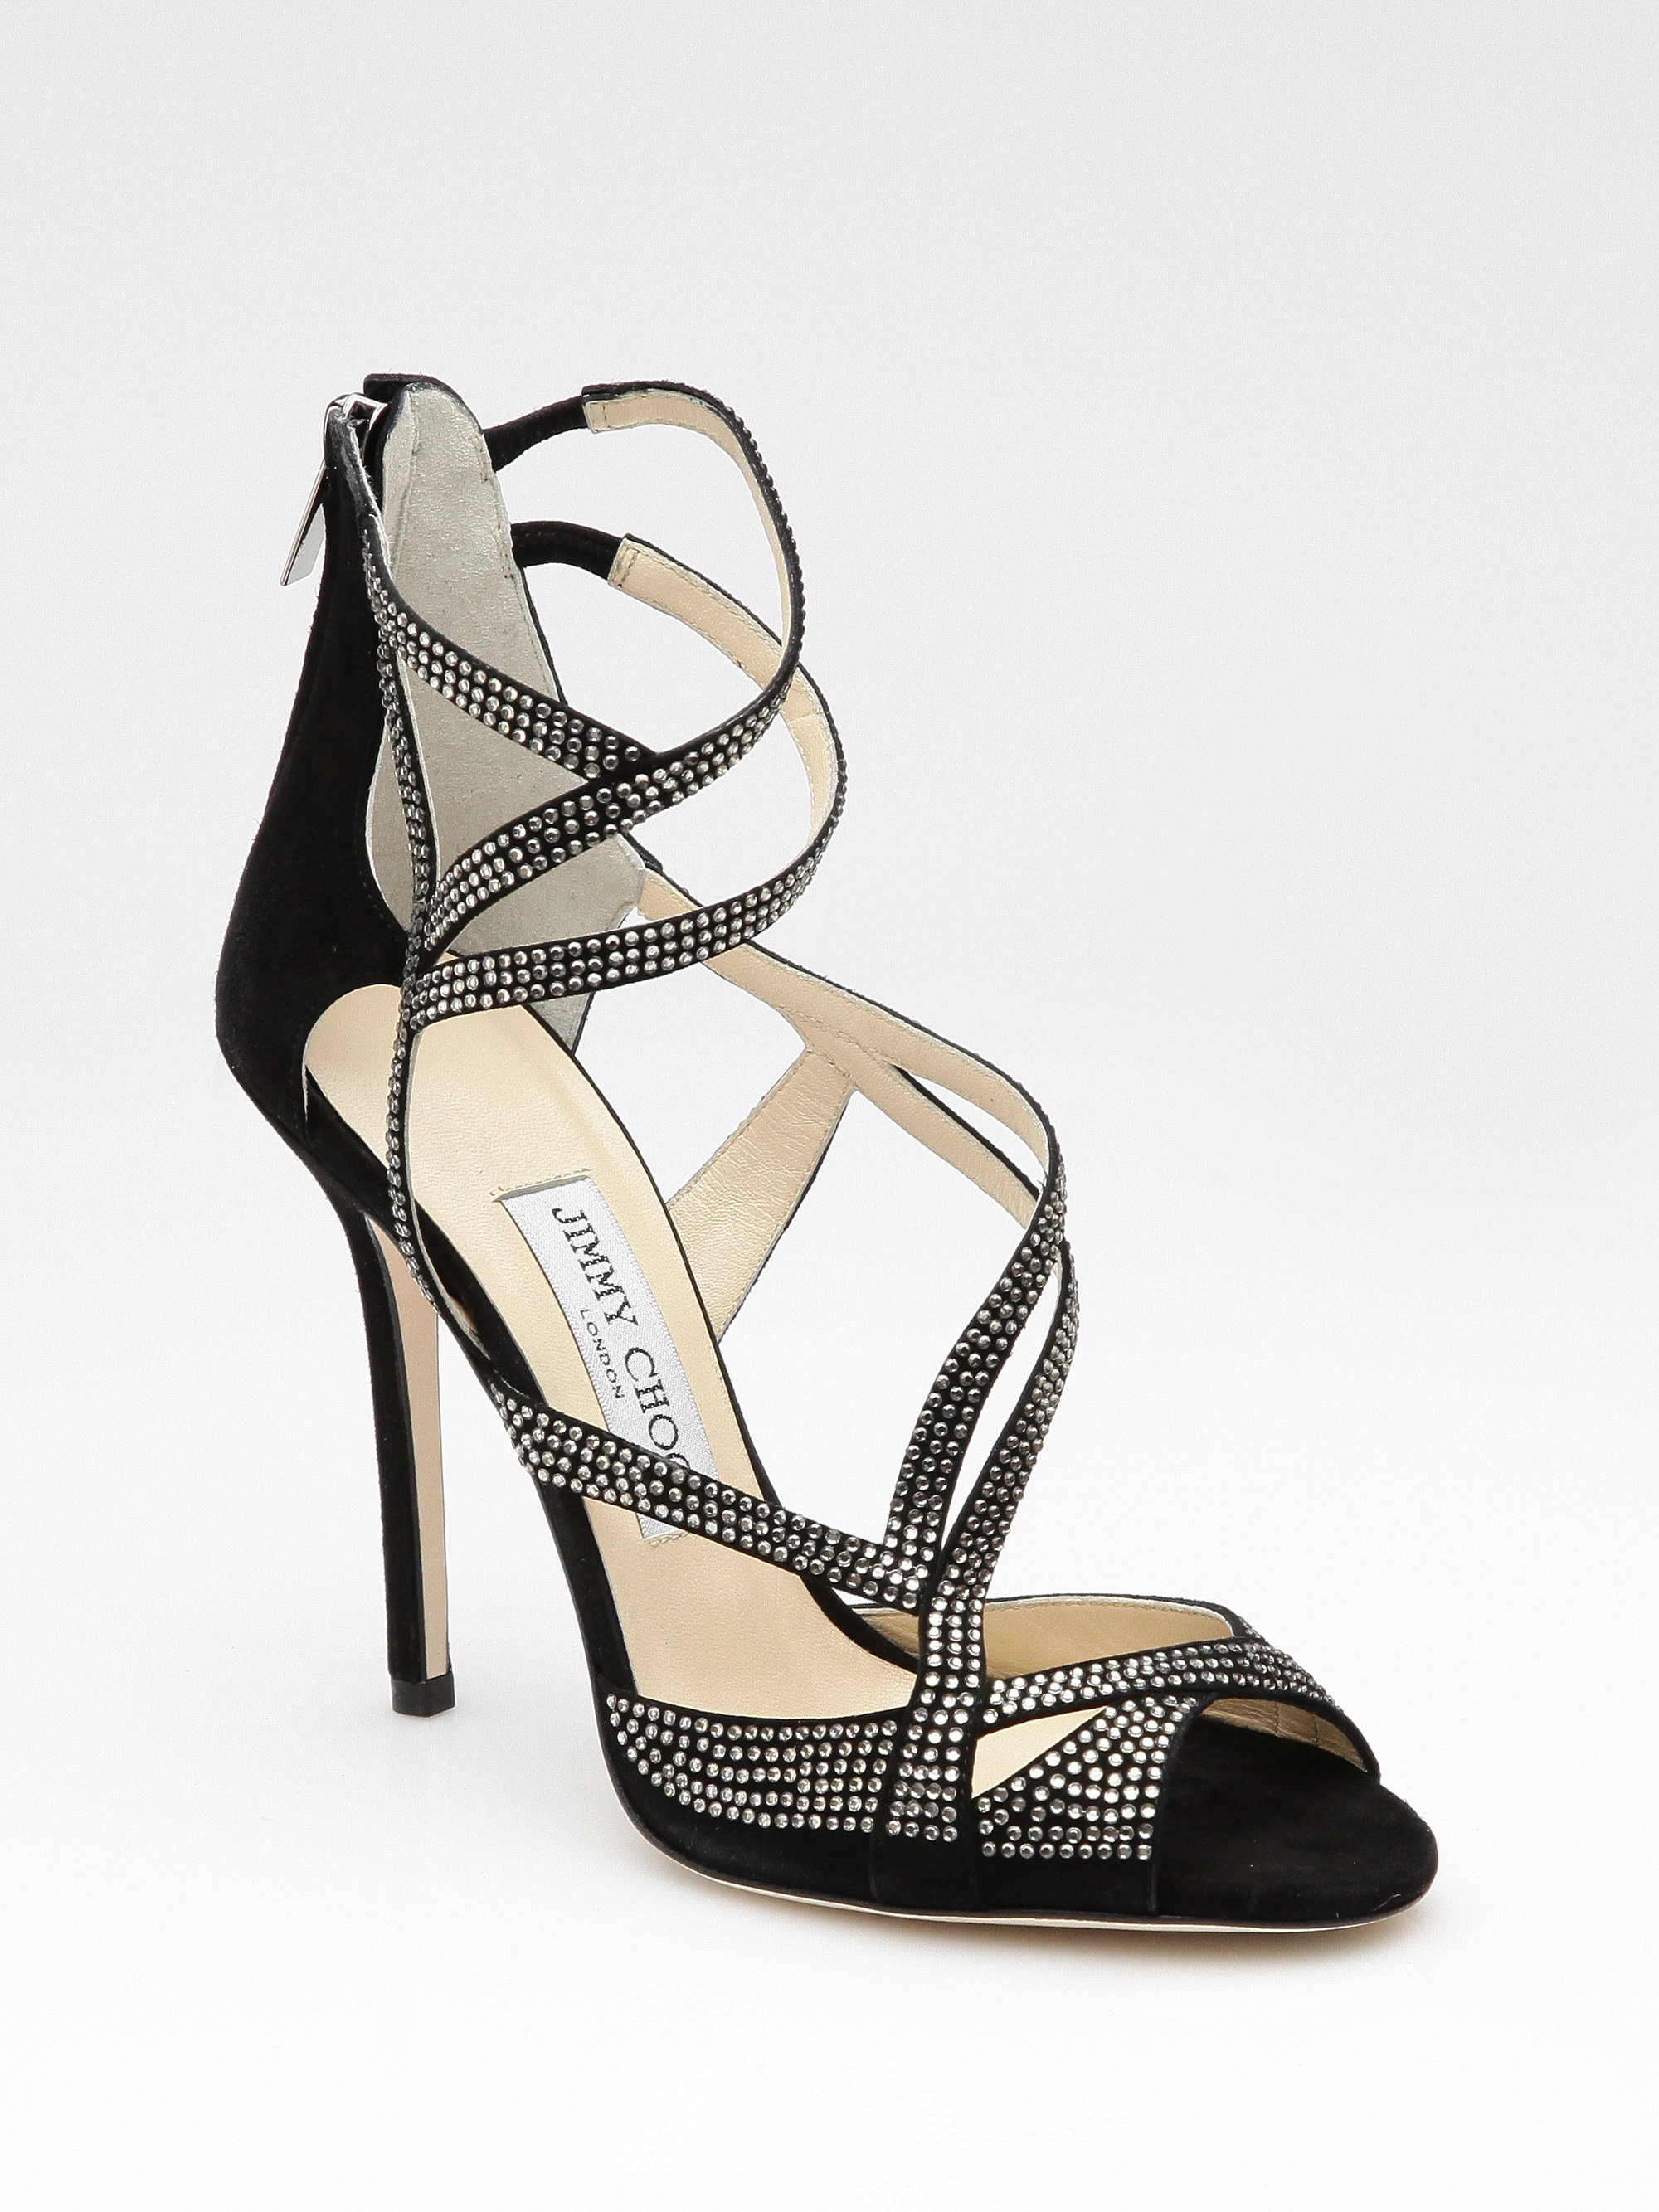 b03d2ea8fe70 Lyst - Jimmy Choo Dome Suede Crystal Strappy Sandals in Black